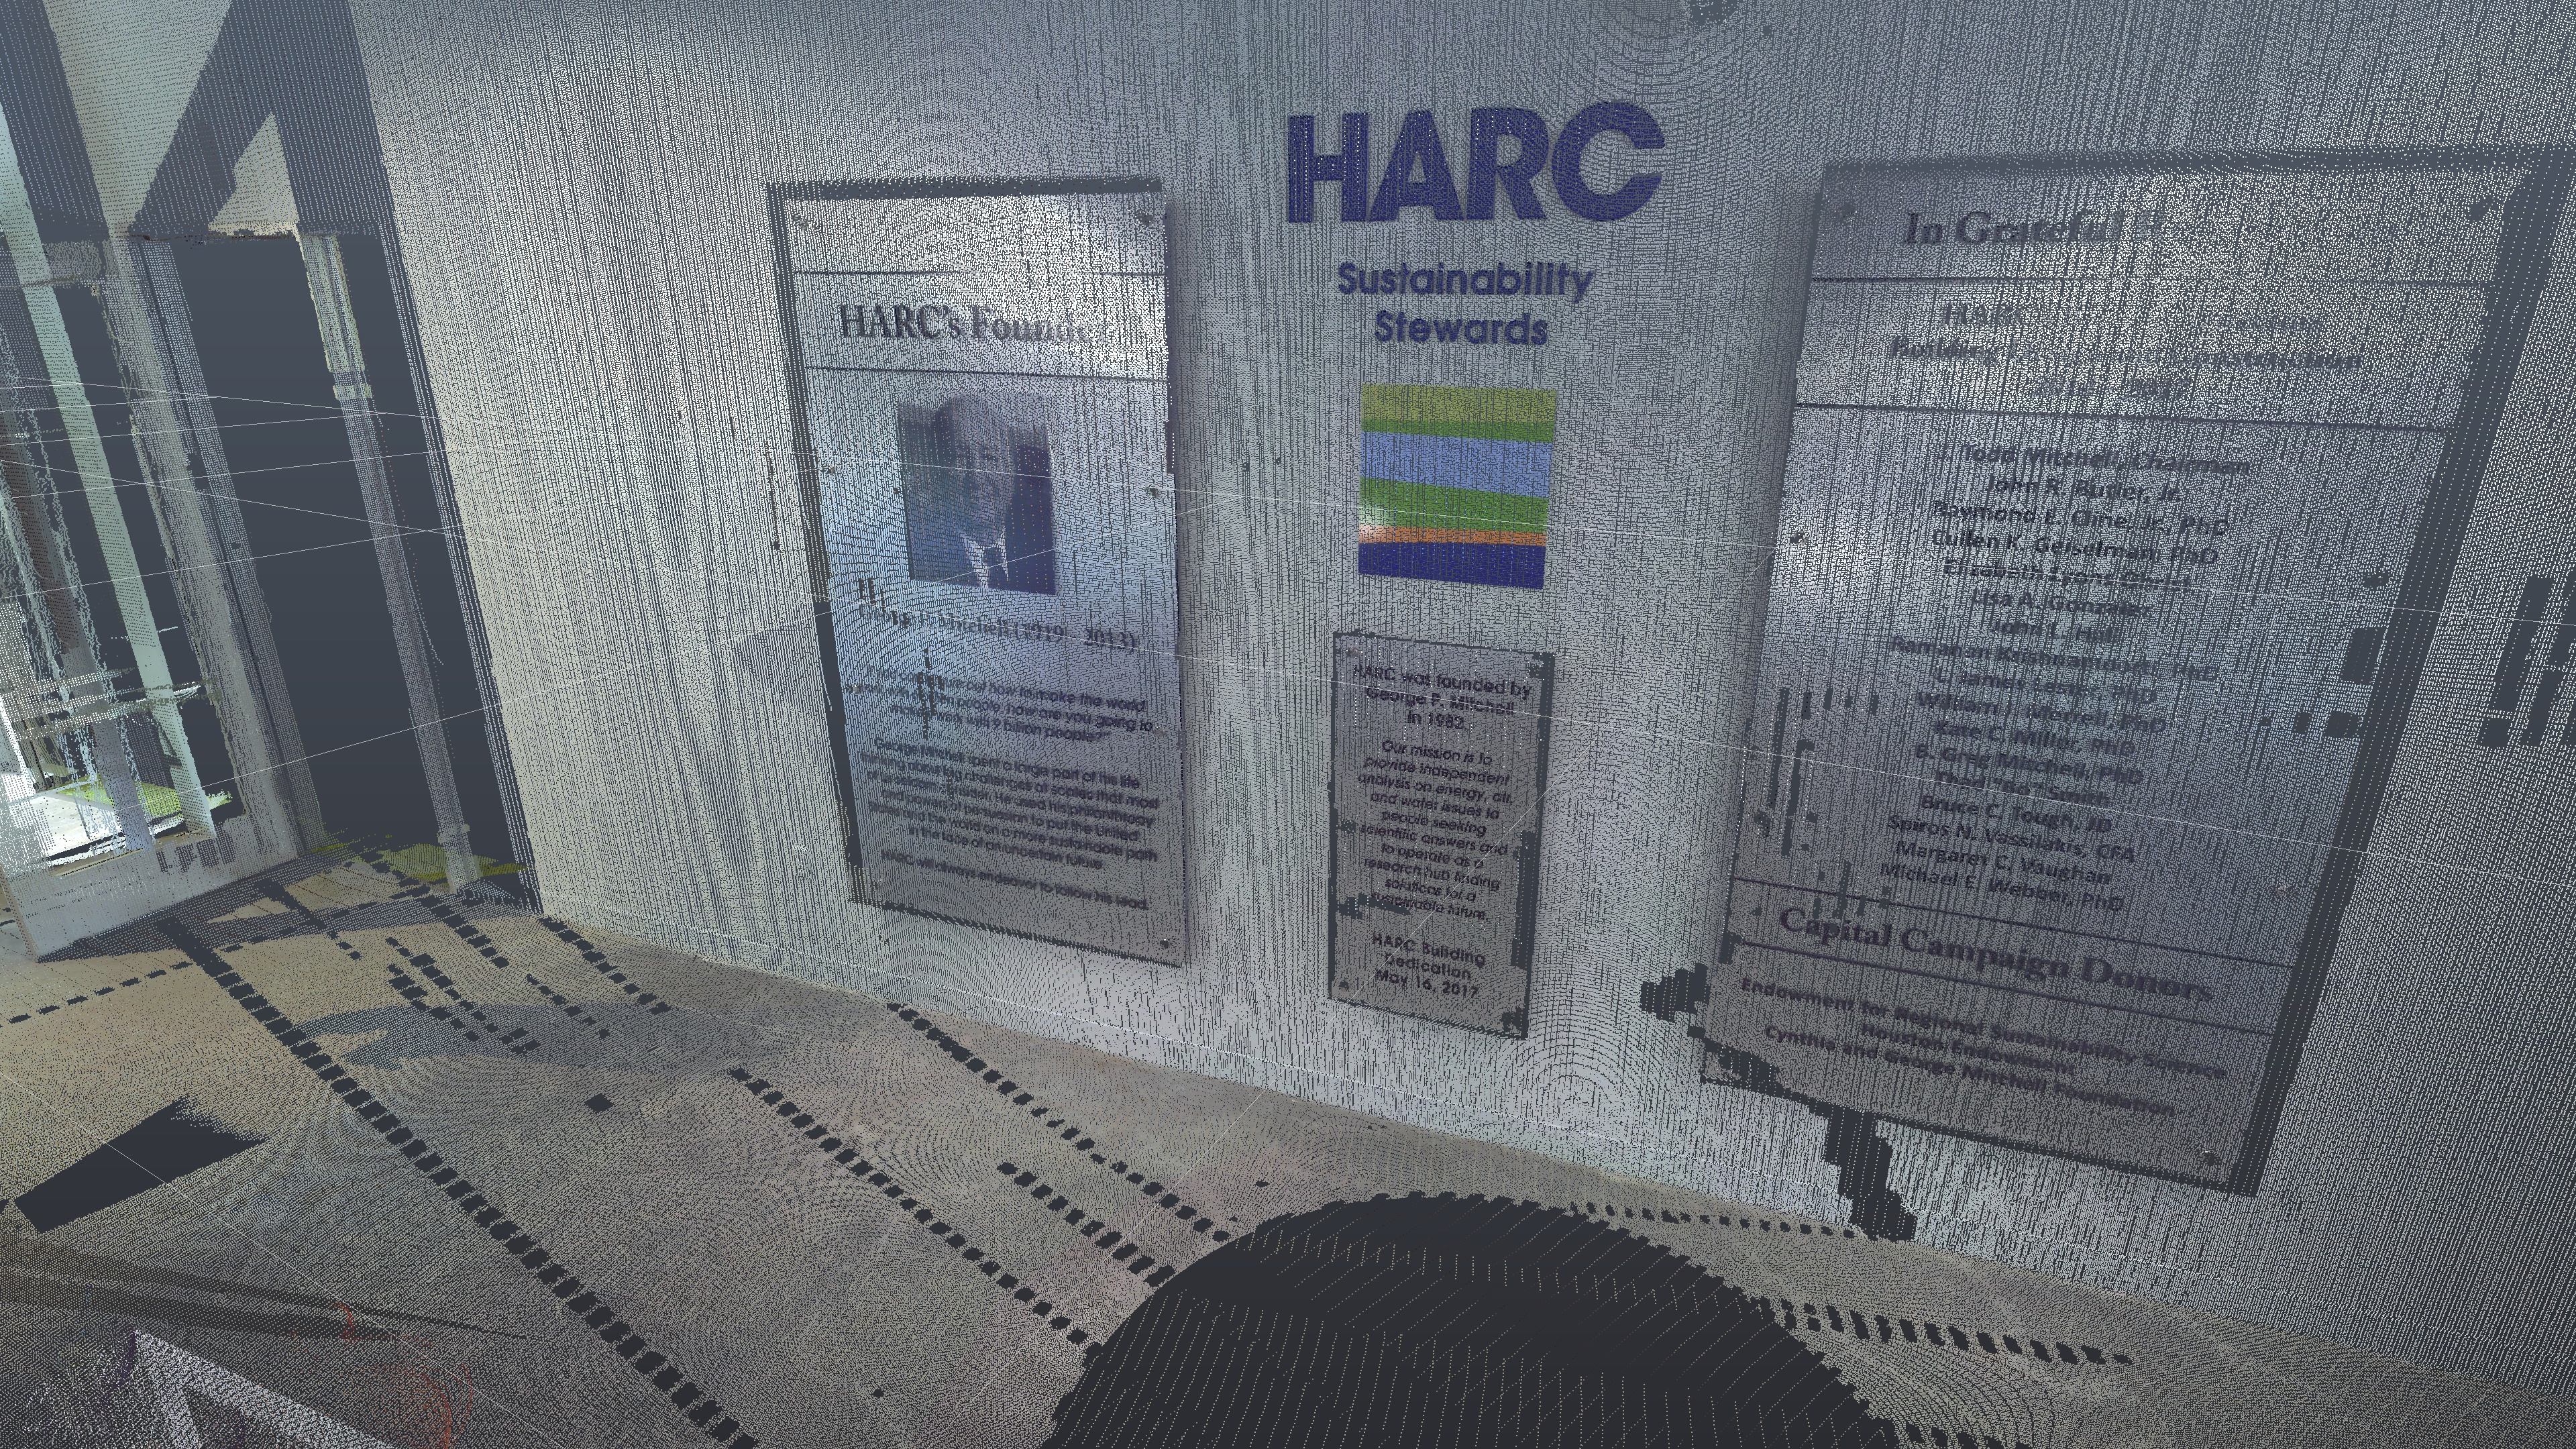 HARC Pointcloud Laser Scan